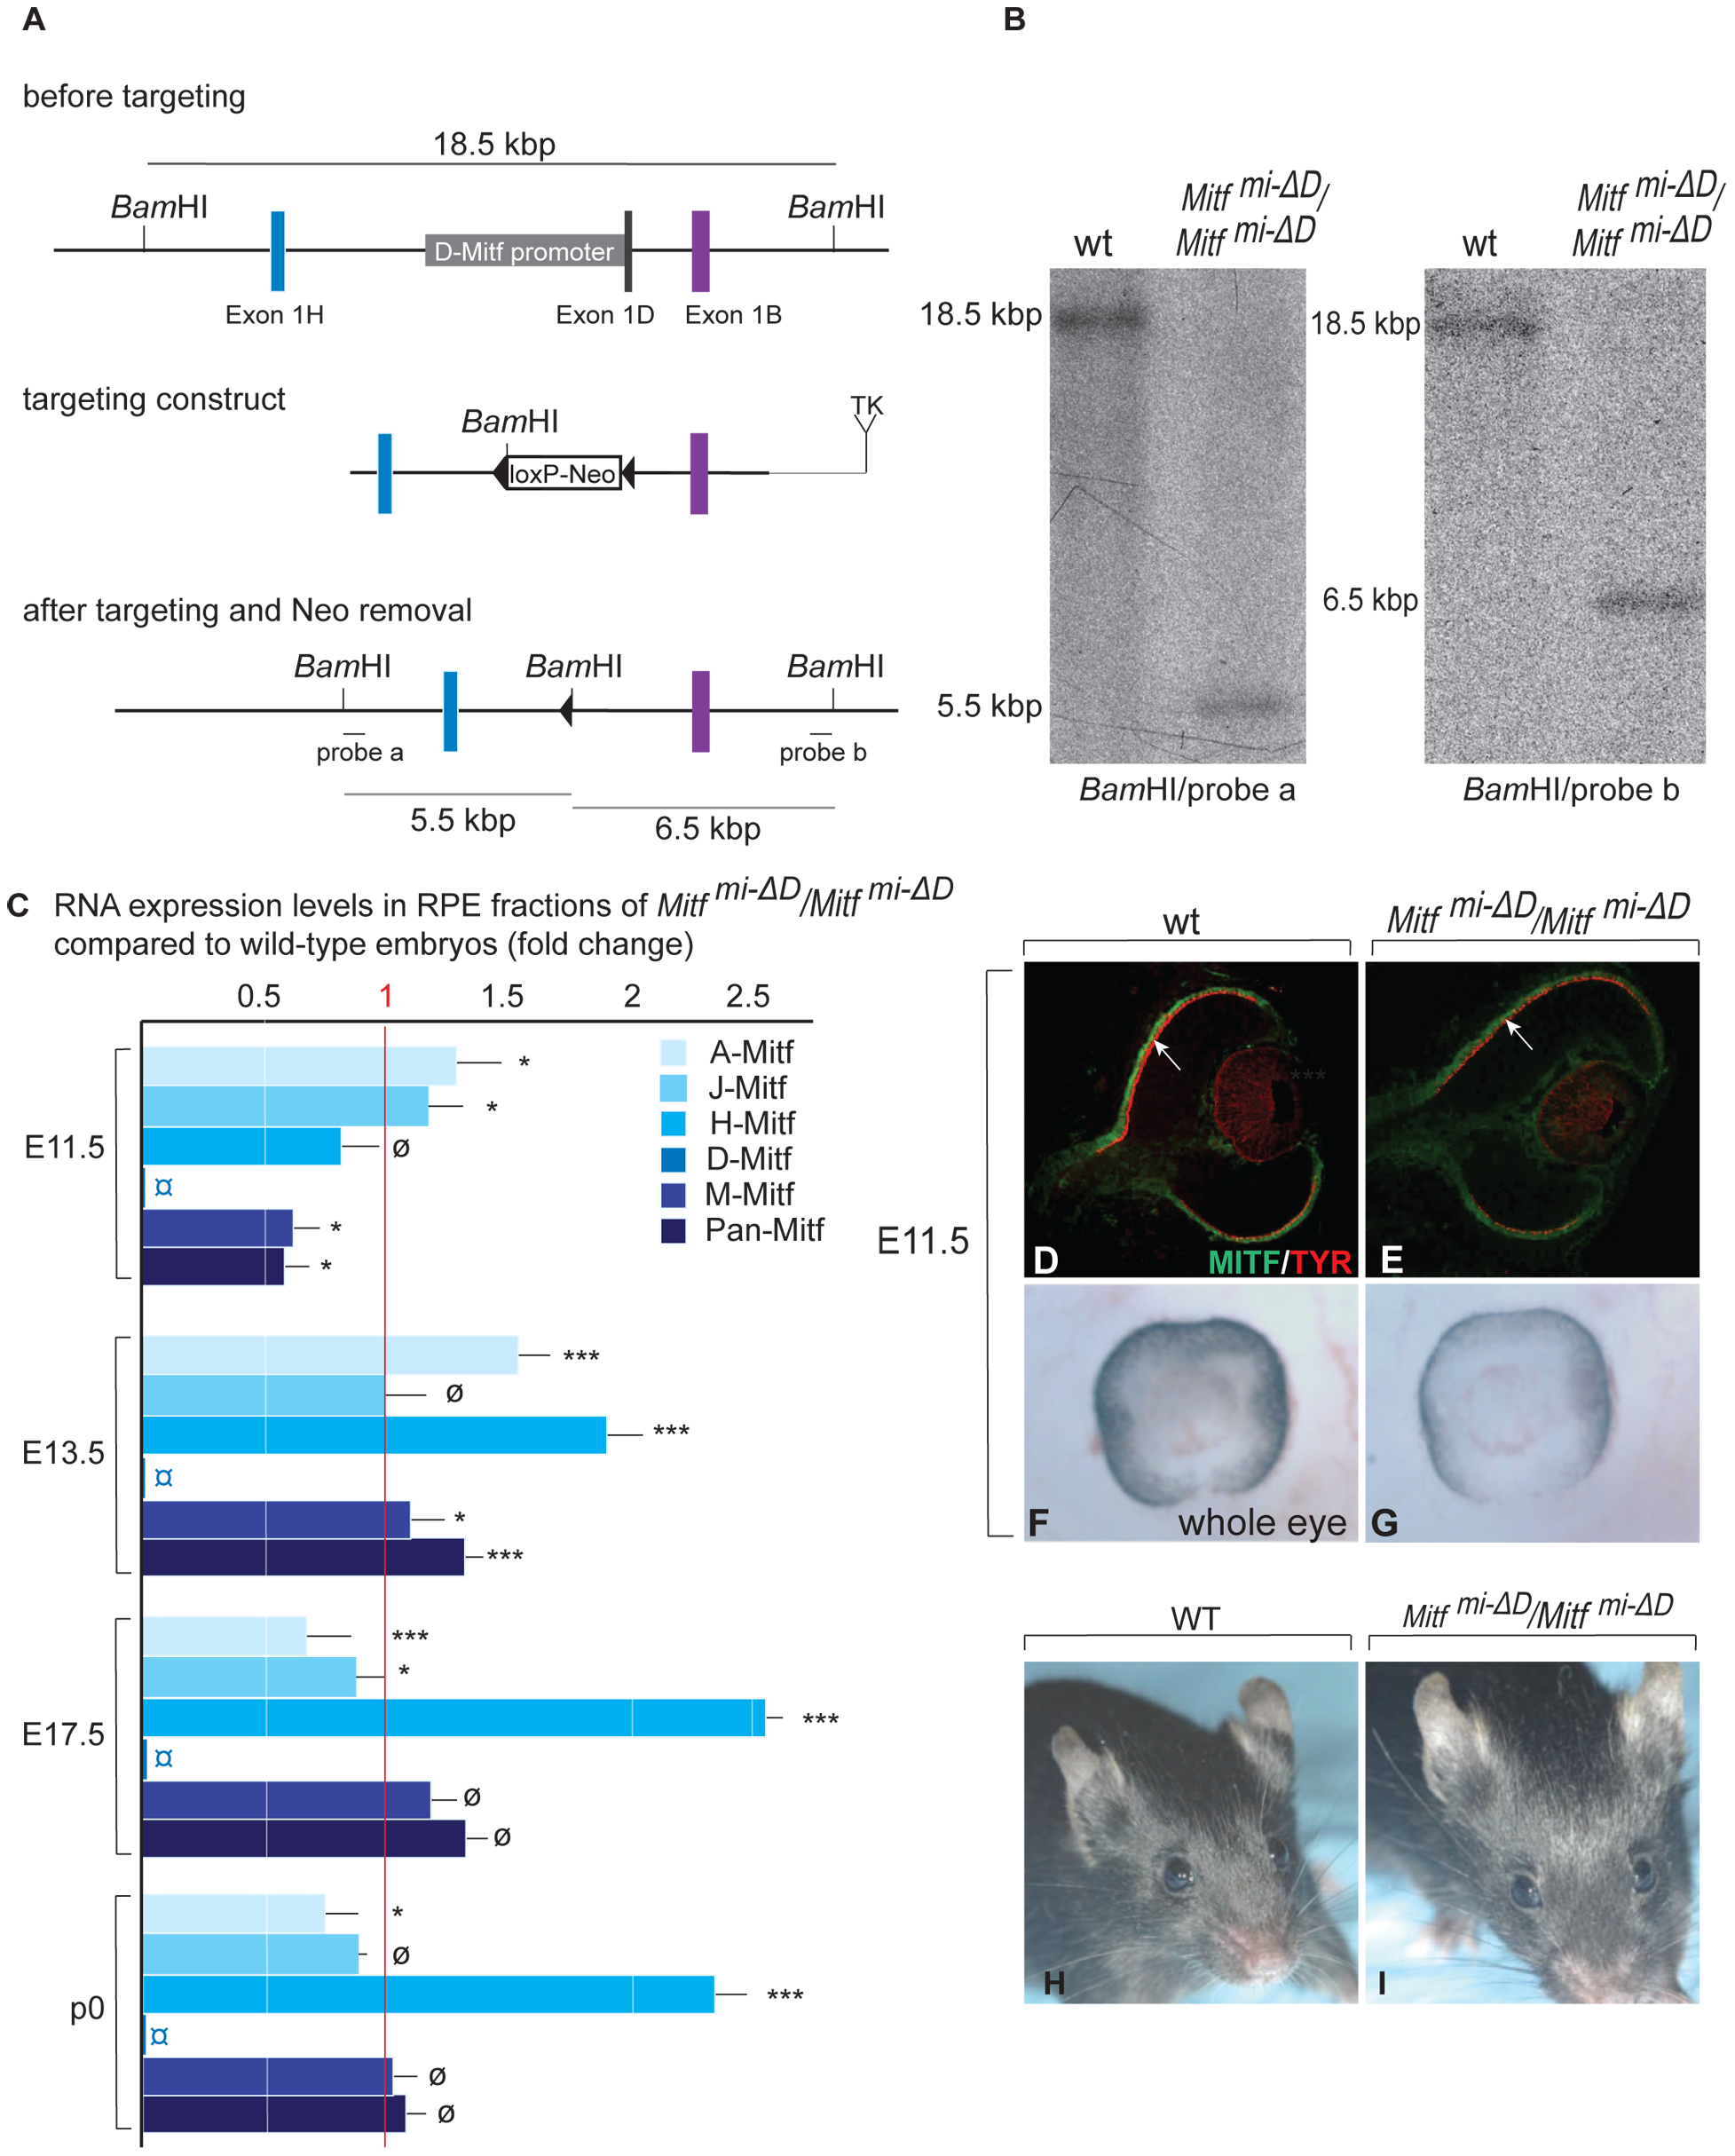 Generation and analysis of mice lacking the RPE–specific <i>D-isoform</i> of <i>Mitf</i> (<i>Mitf<sup>mi-<i>Δ</i>D</sup>/Mitf<sup>mi-<i>Δ</i>D</sup></i>).